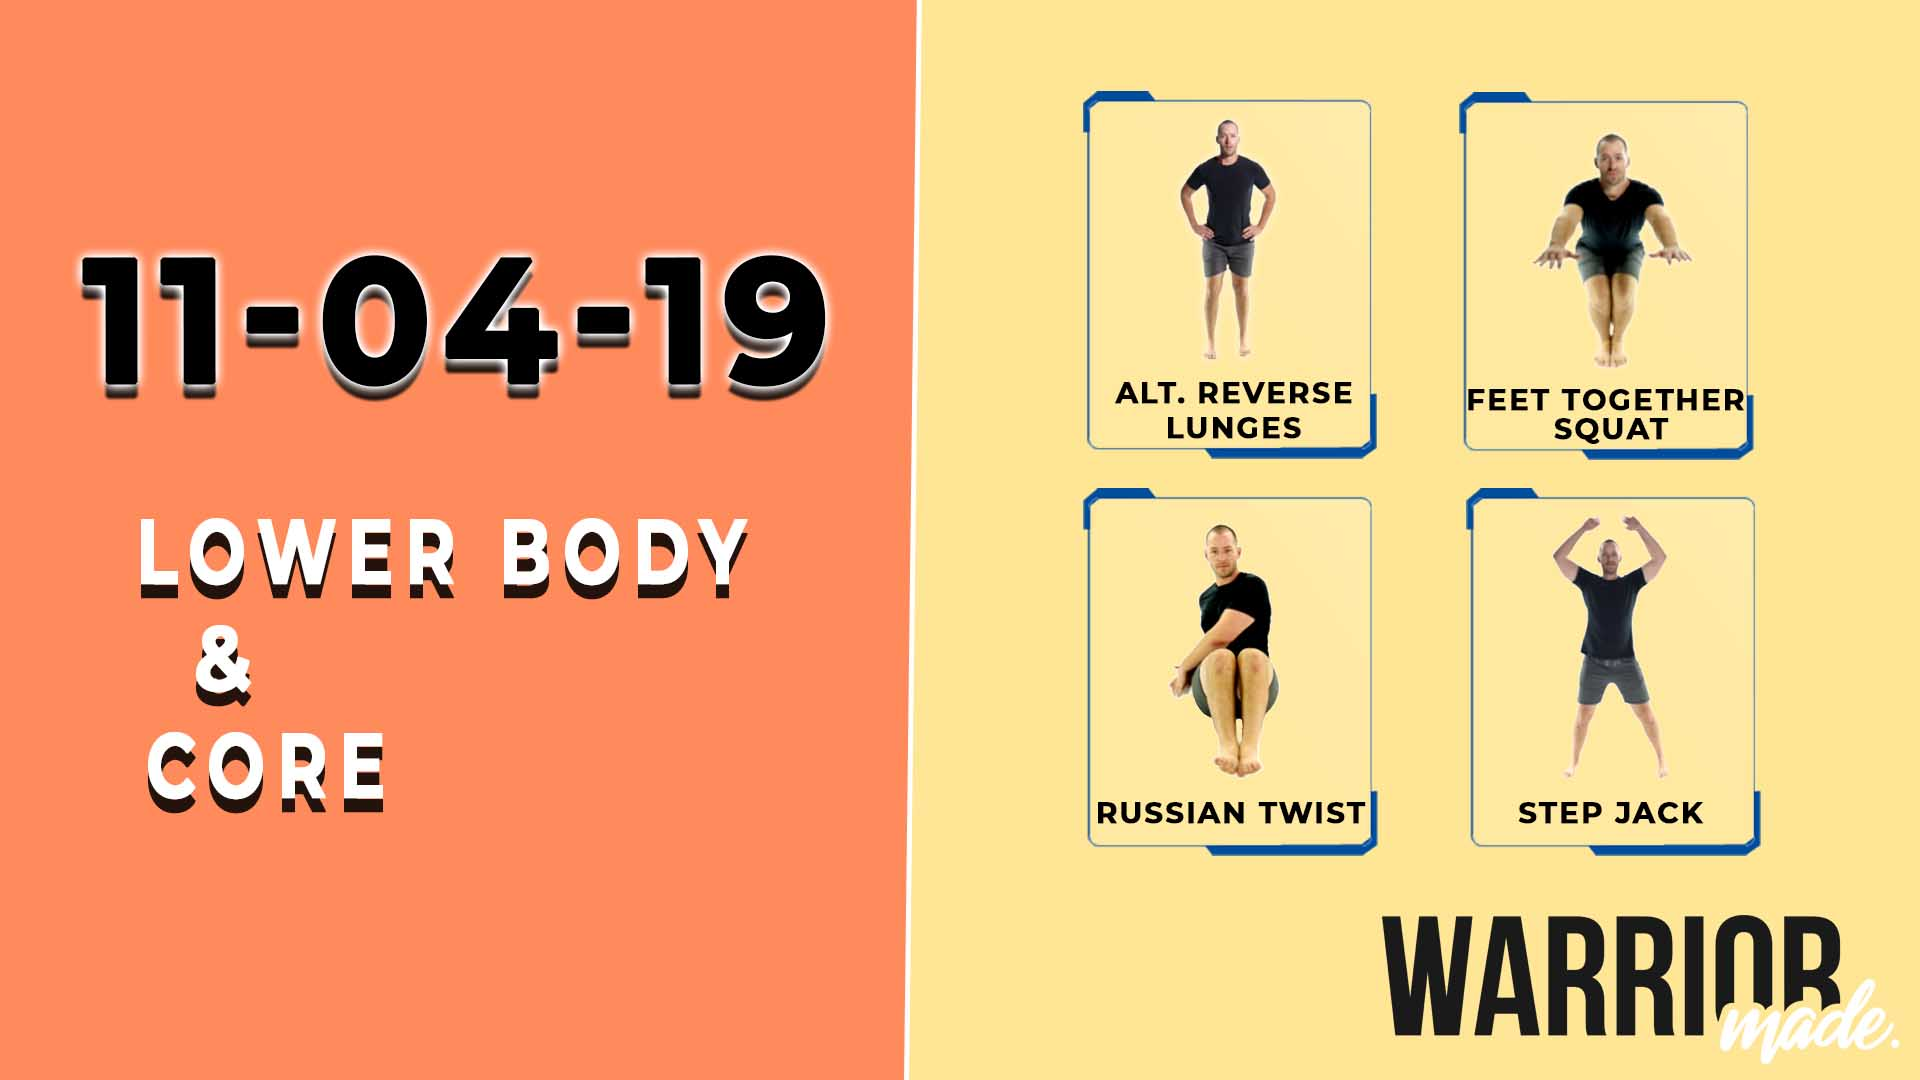 workouts-11-04-19